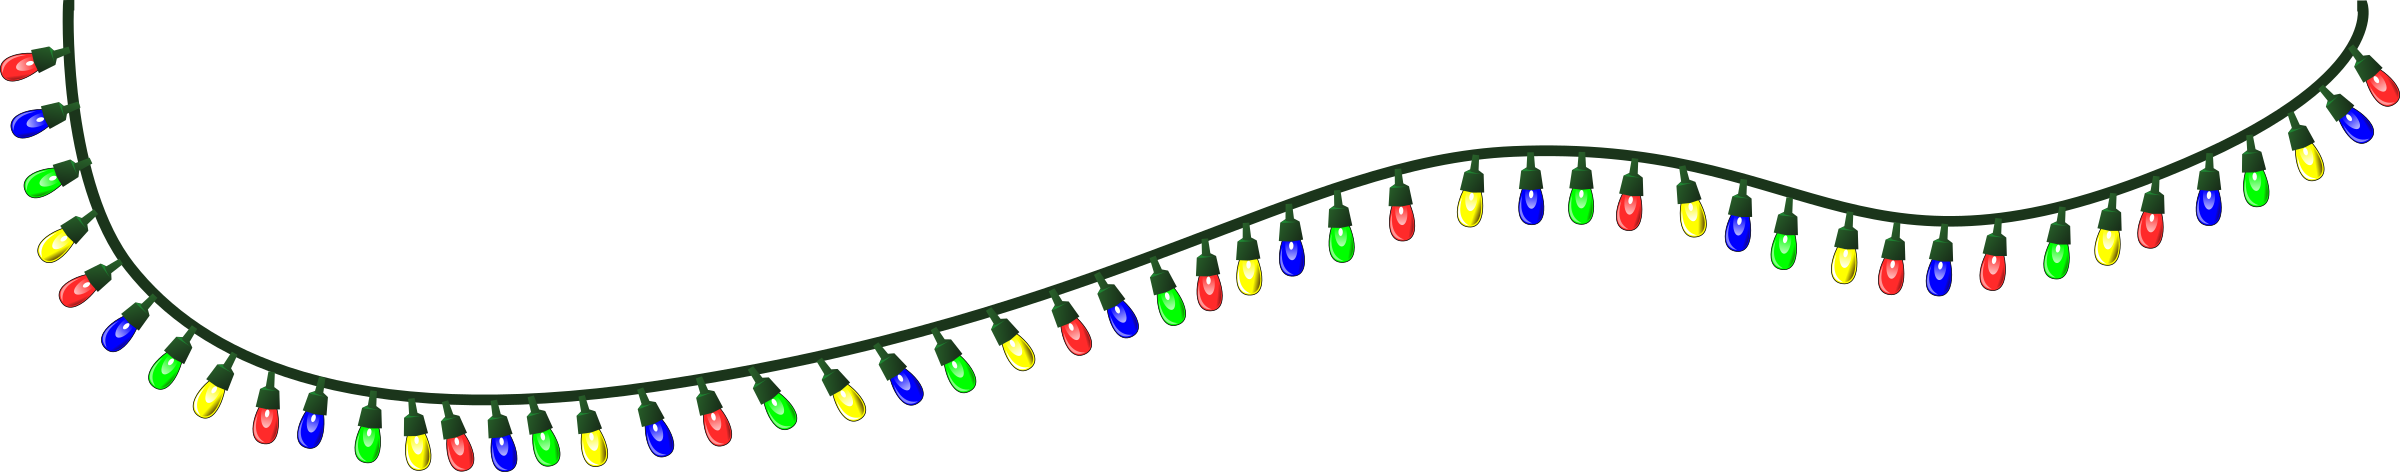 Christmas Lights clipart #6, Download drawings